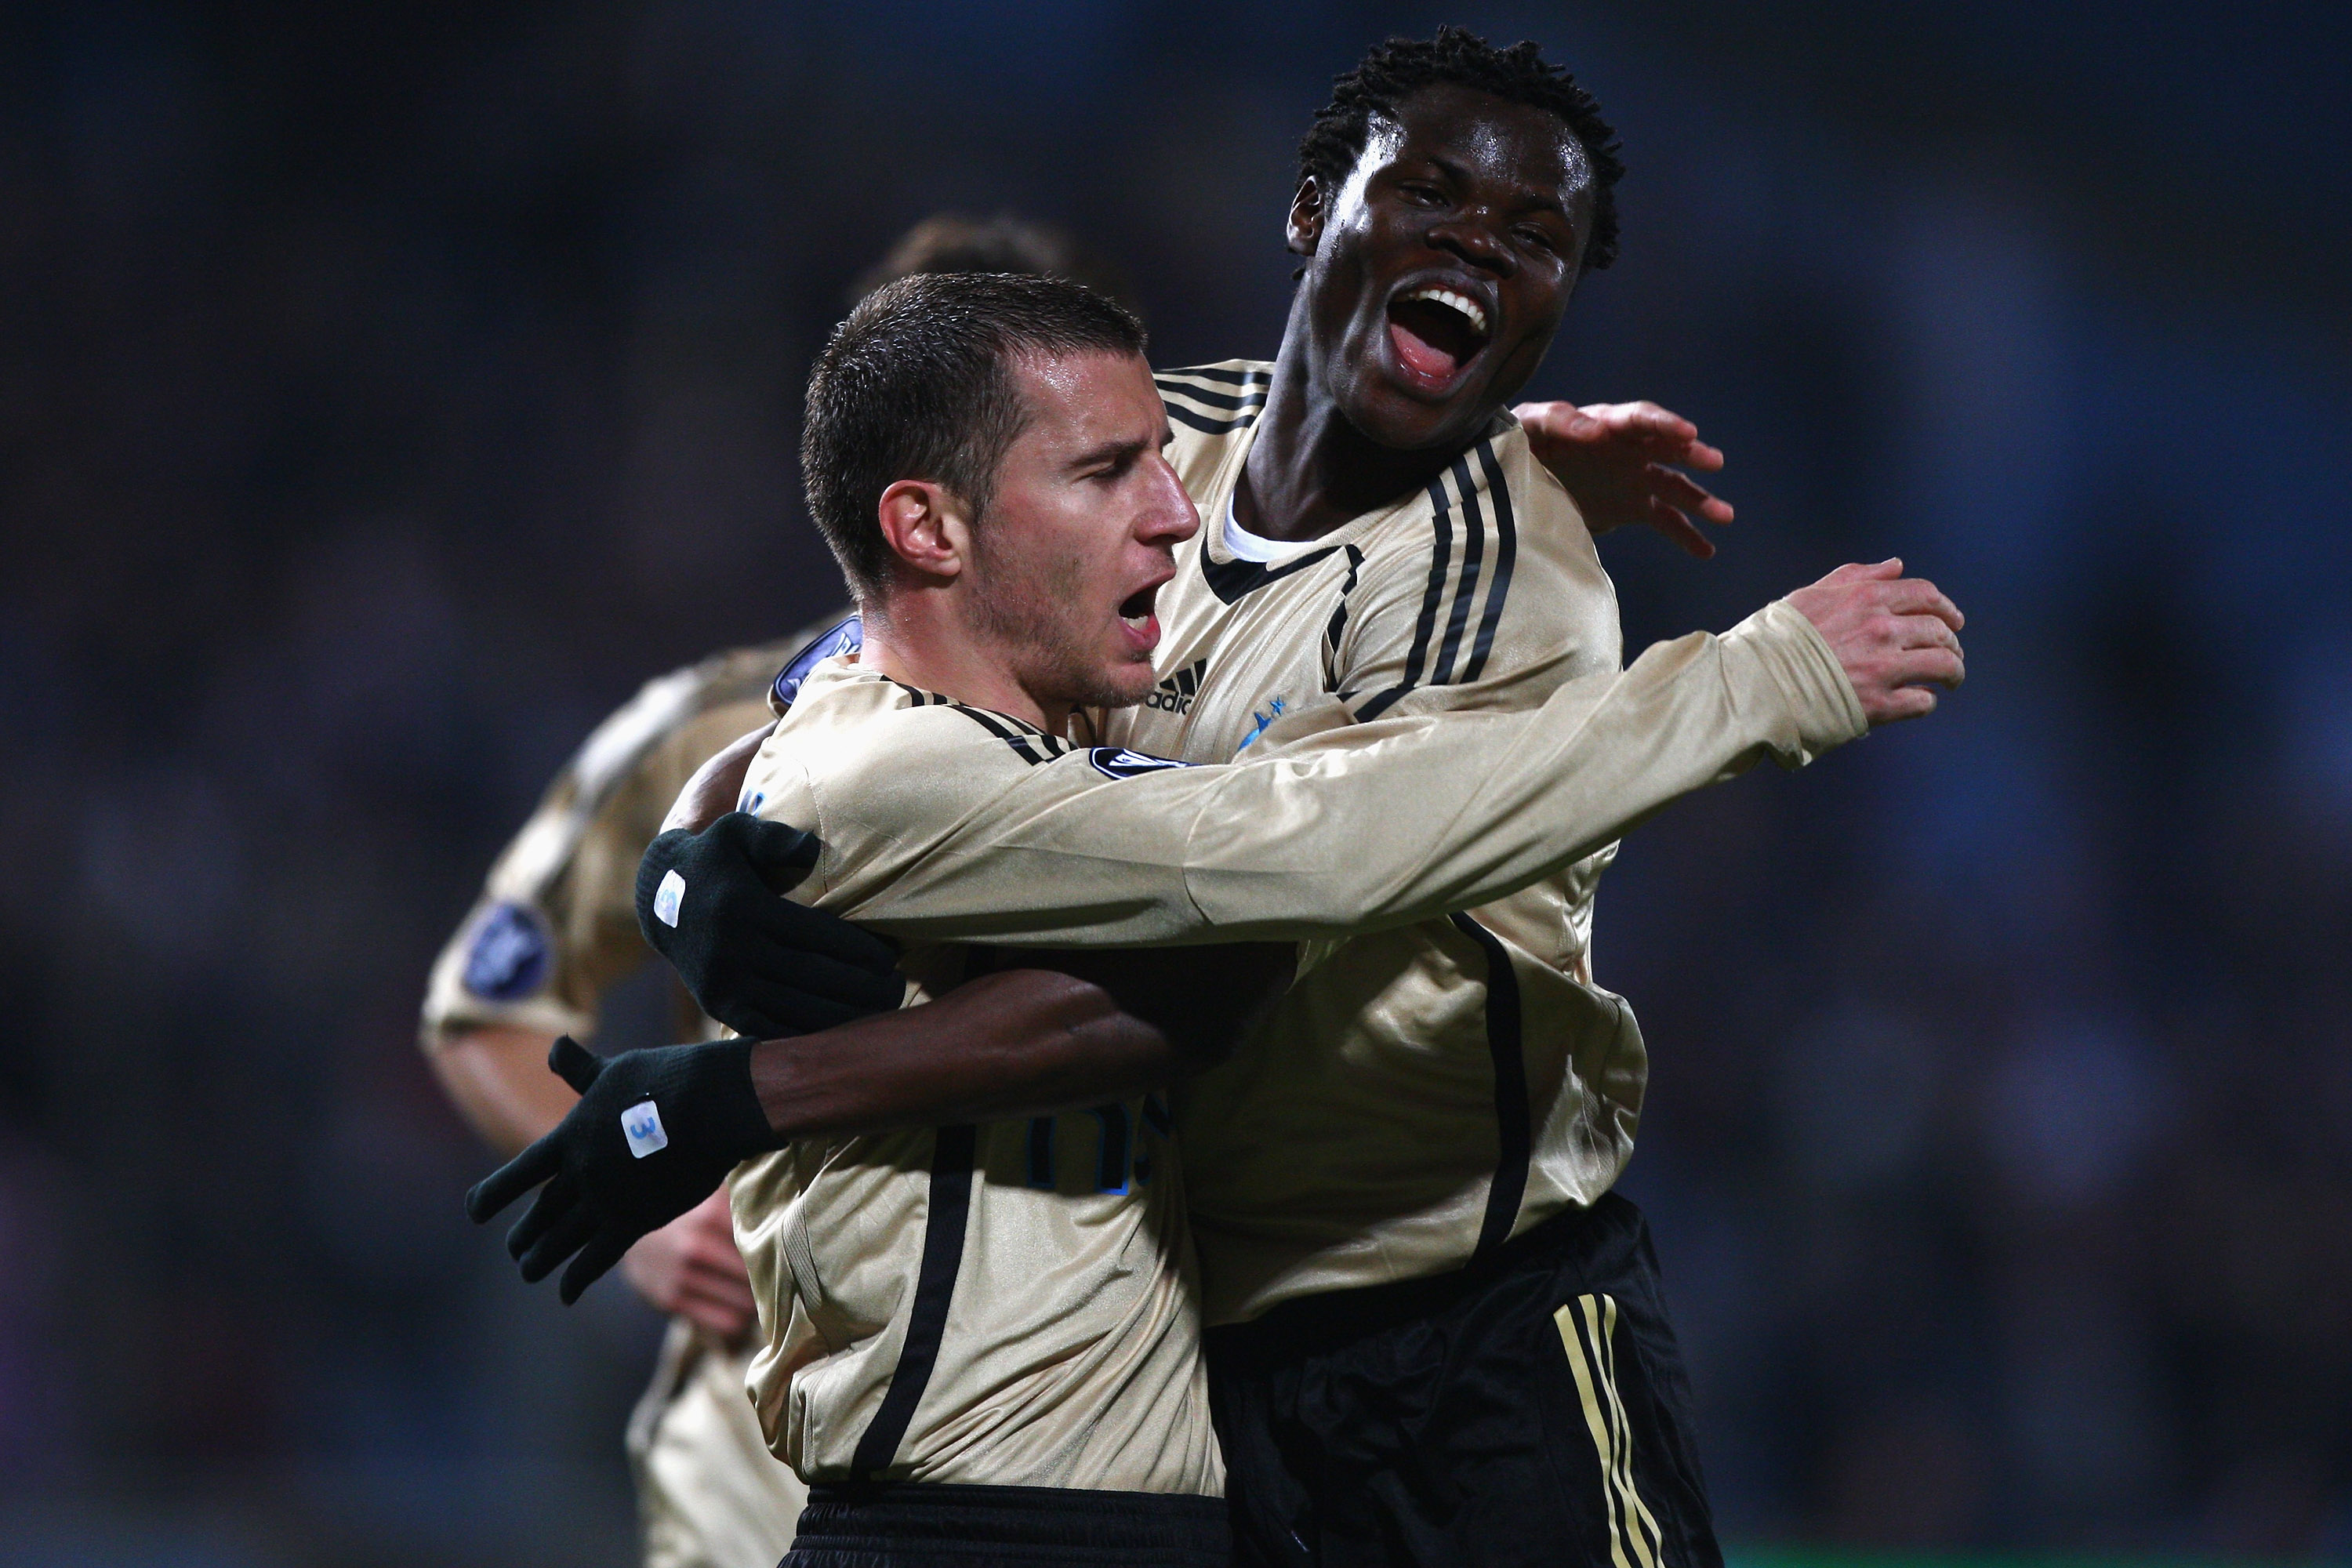 MARSEILLE, FRANCE - MARCH 12: Benoit Cheyrou (L) celebrates scoring the first goal with Ismaila Taiwo Taye (r) during the Uefa Cup last sixteen first leg match between Olympique Marseille and Ajax at the Stade Velodrome on March 12, 2009 in Marseille,Fran